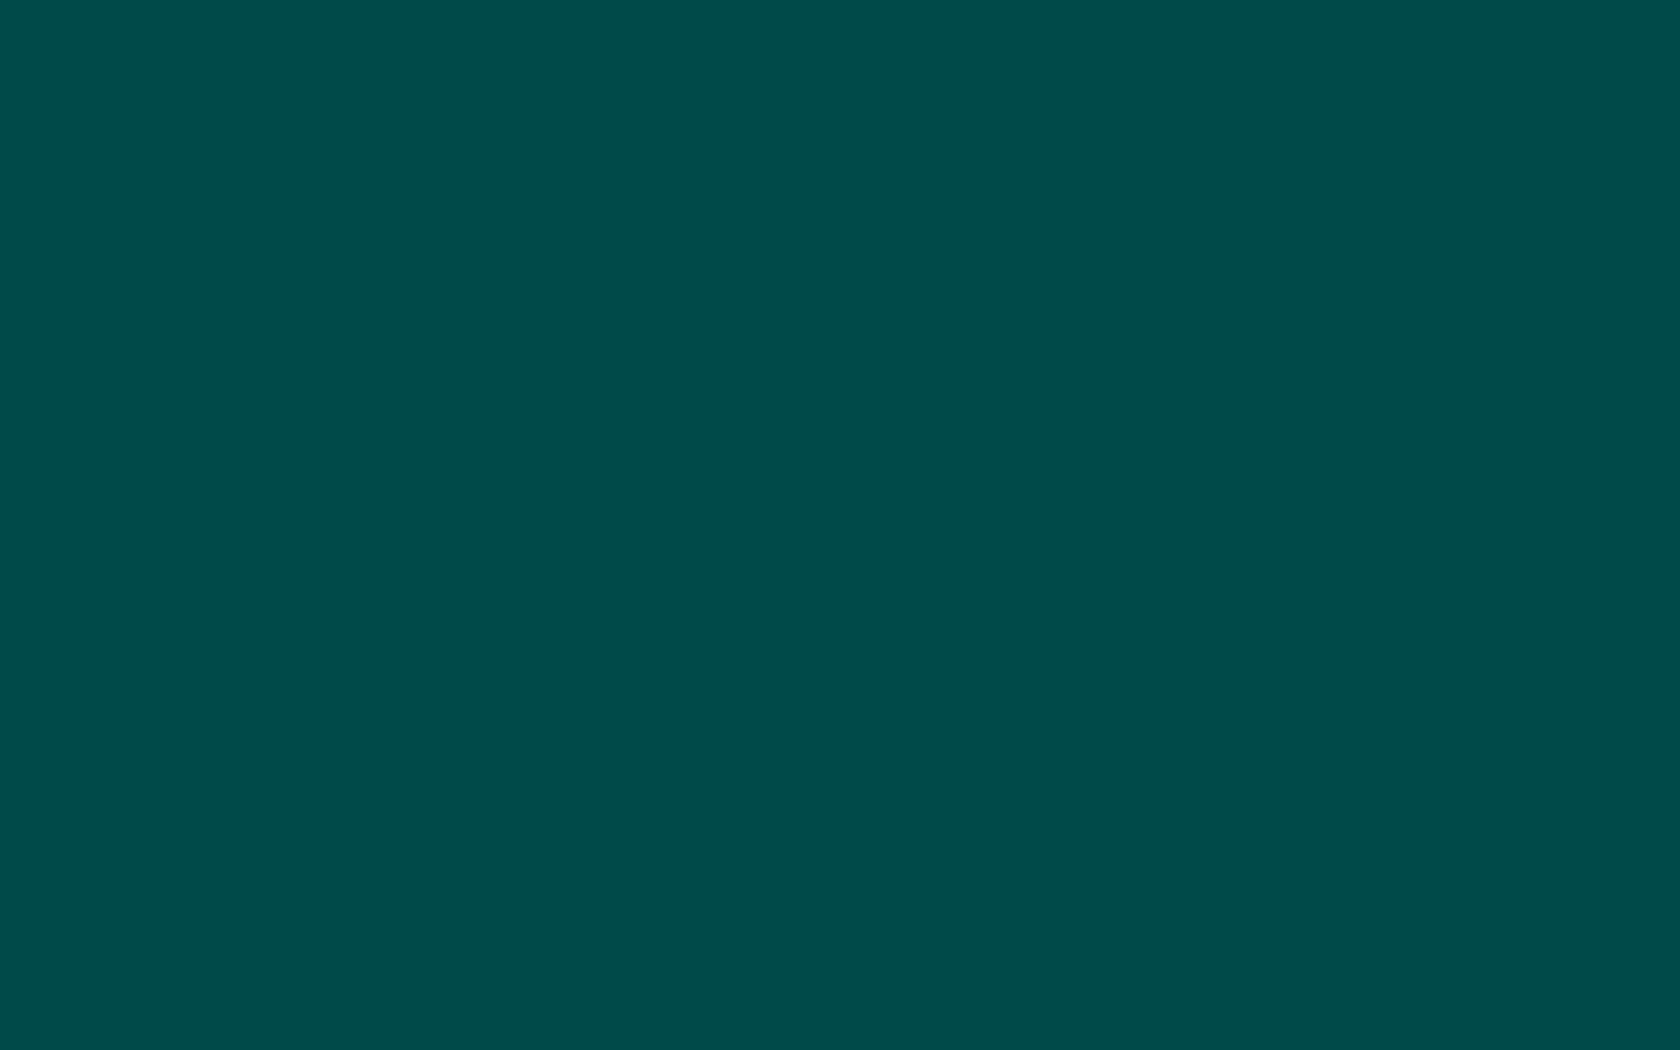 1680x1050 Deep Jungle Green Solid Color Background